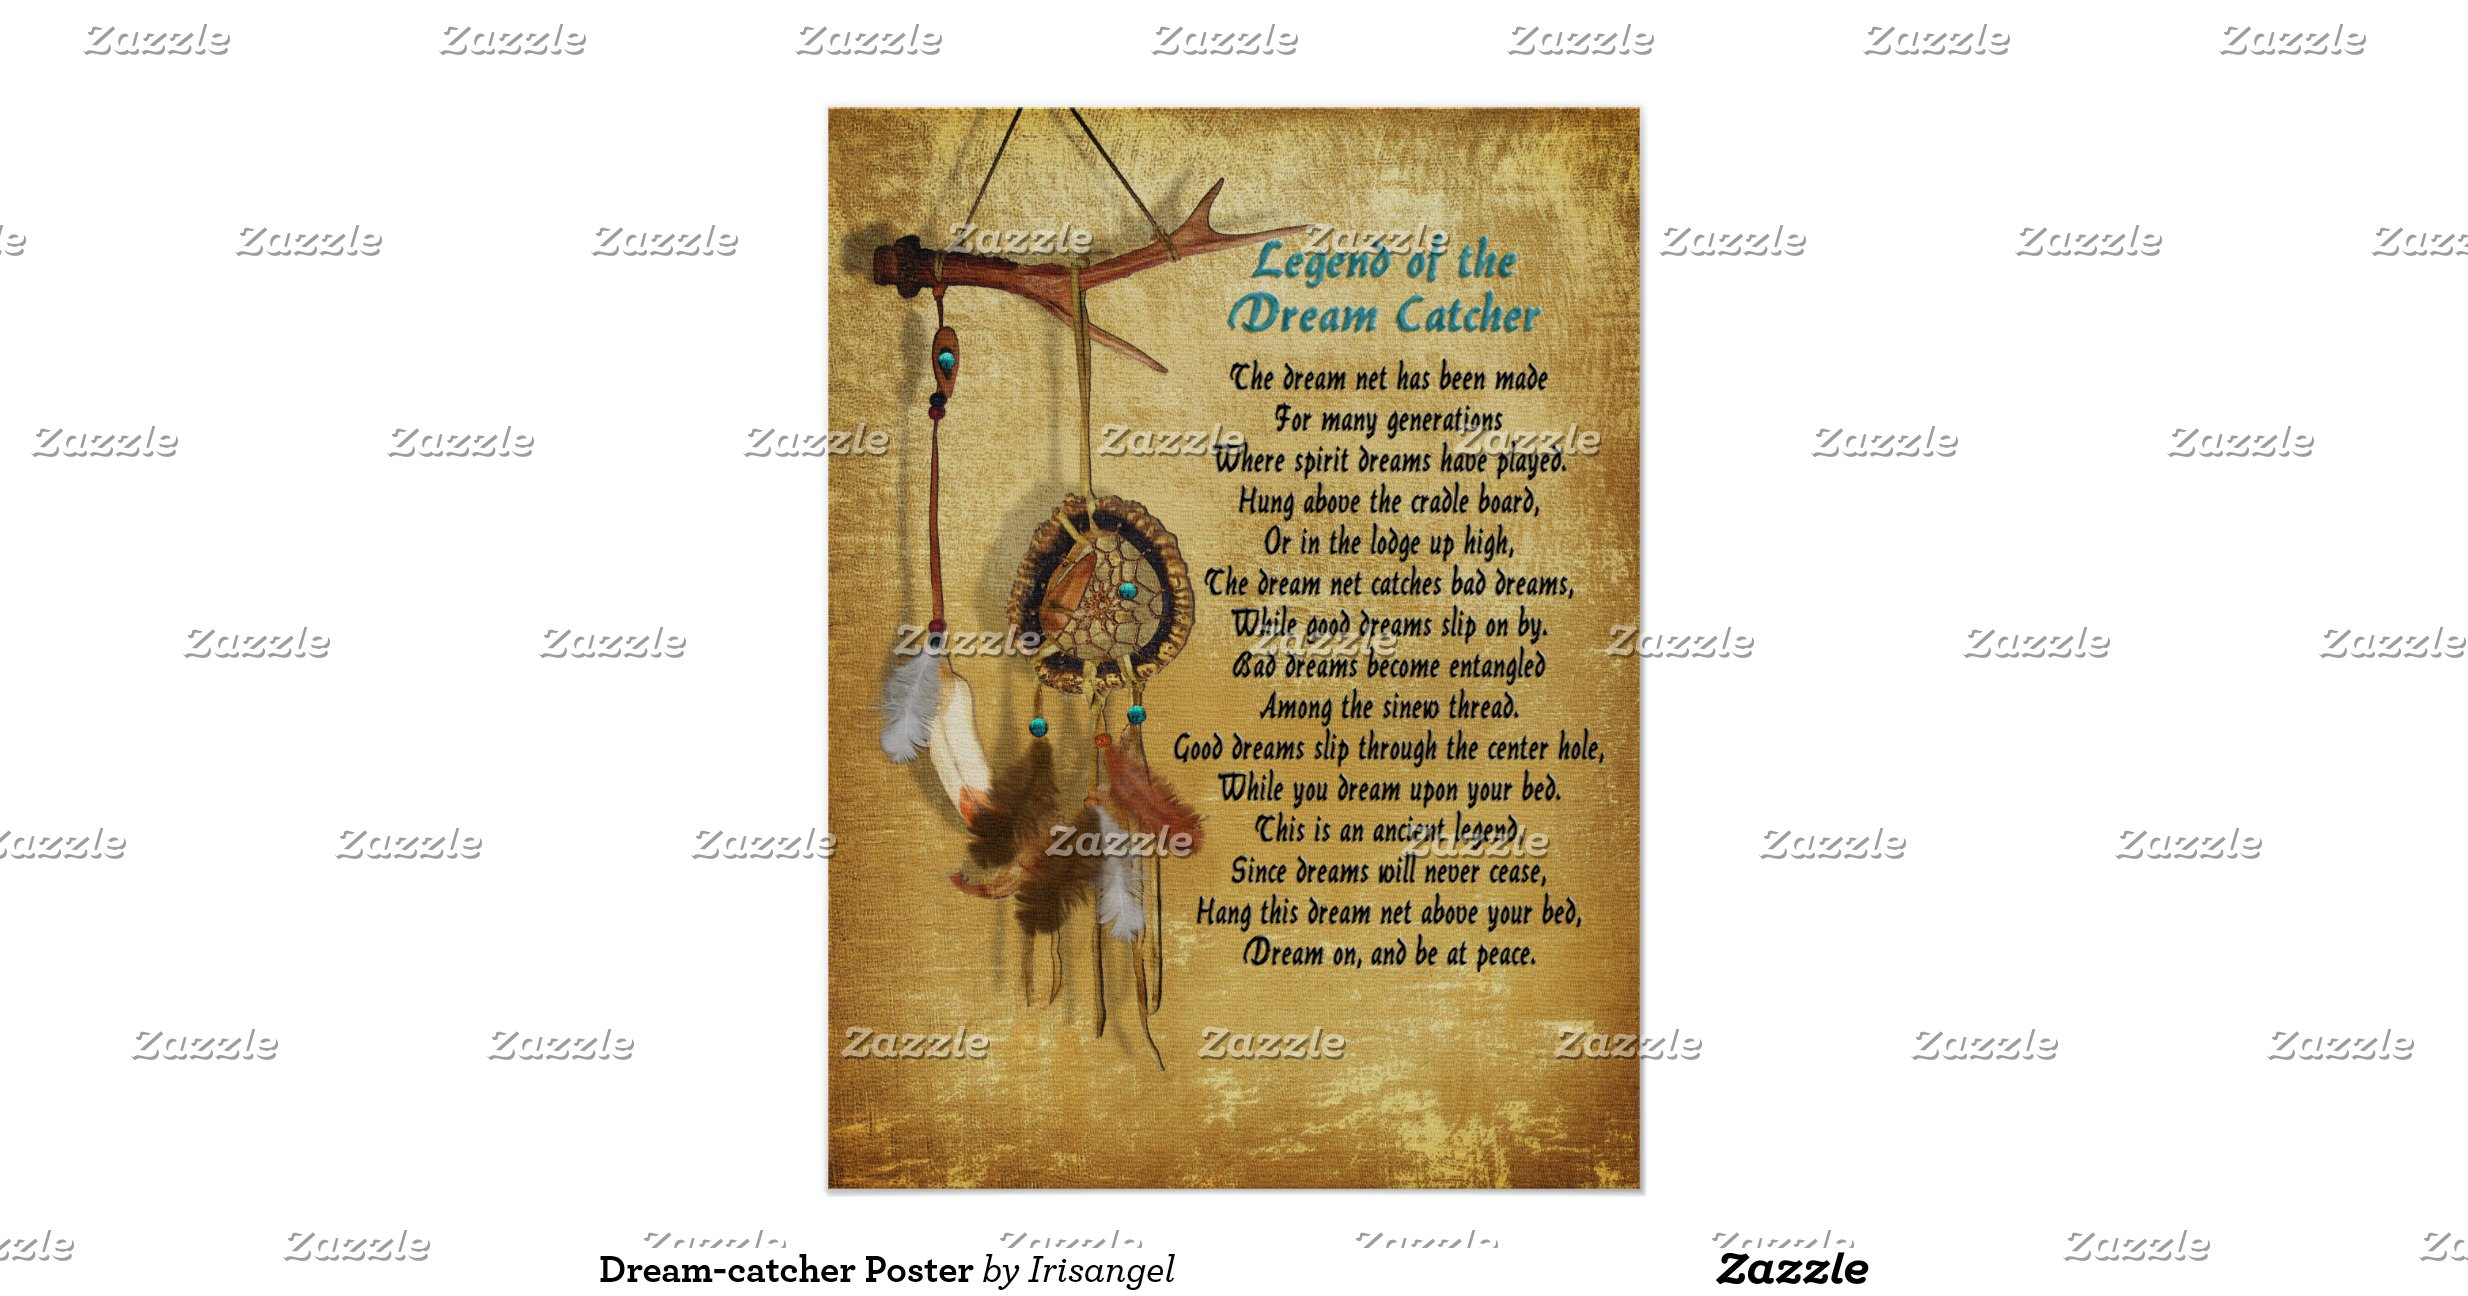 legend of the dream catcher Legend of the dream catcher according to legend, native americans wove dream catchers and hung them above their sleeping places inspired by a spider weaving its web, dream catchers were believed to offer protection from bad dreams.